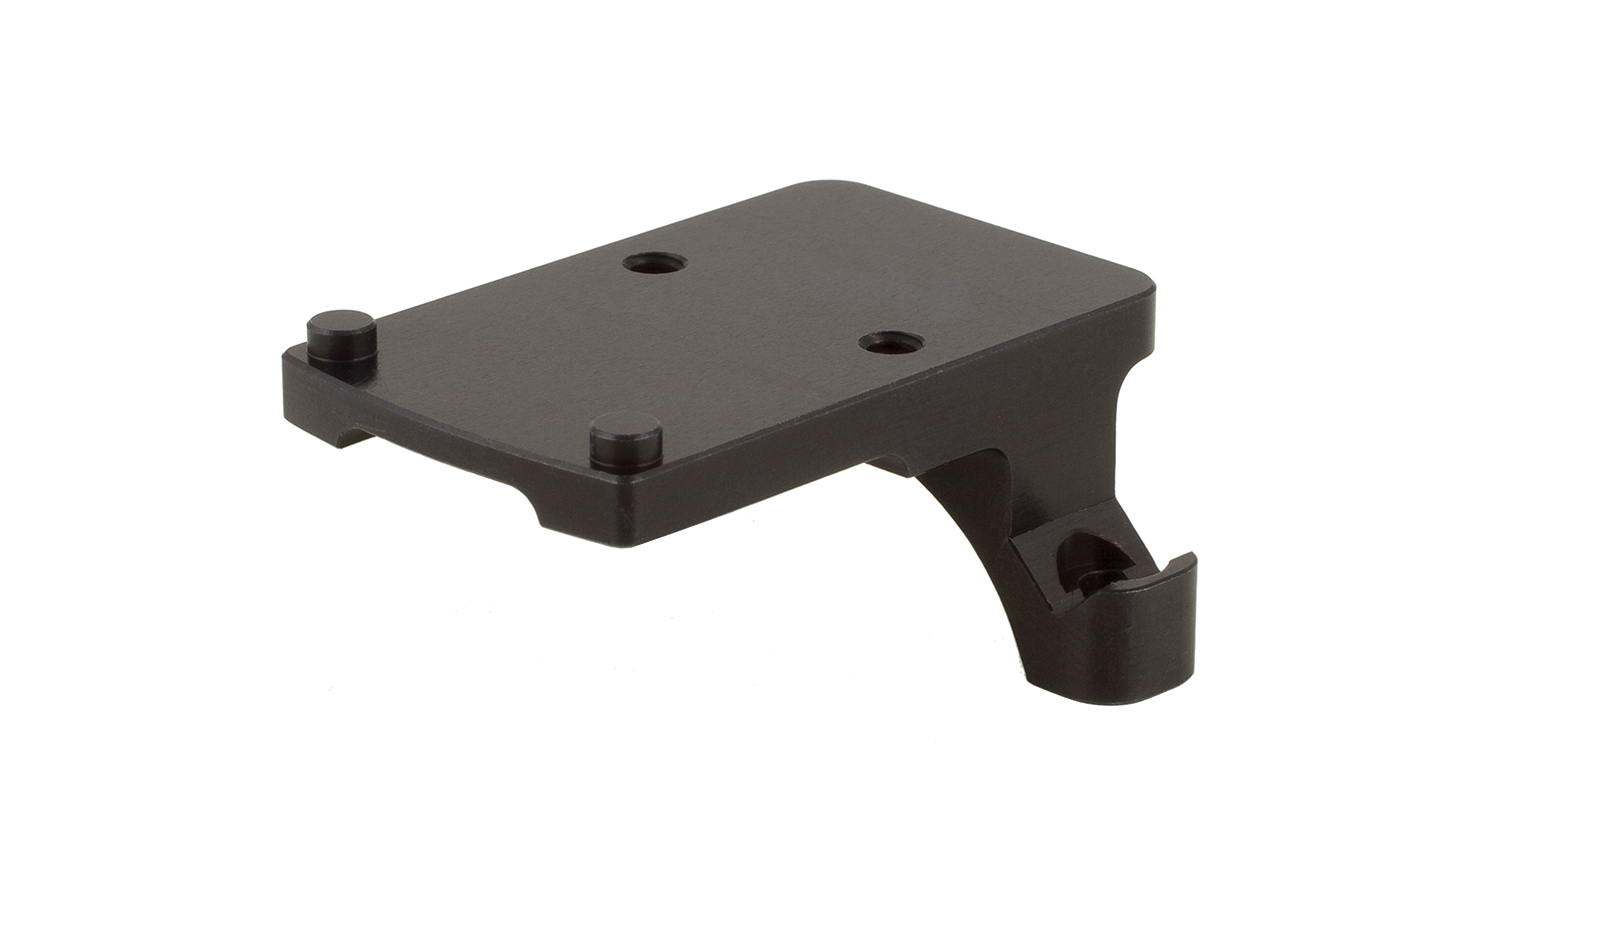 RMR® Mount for 3x24 and 3x30 ACOG® w/ Bosses